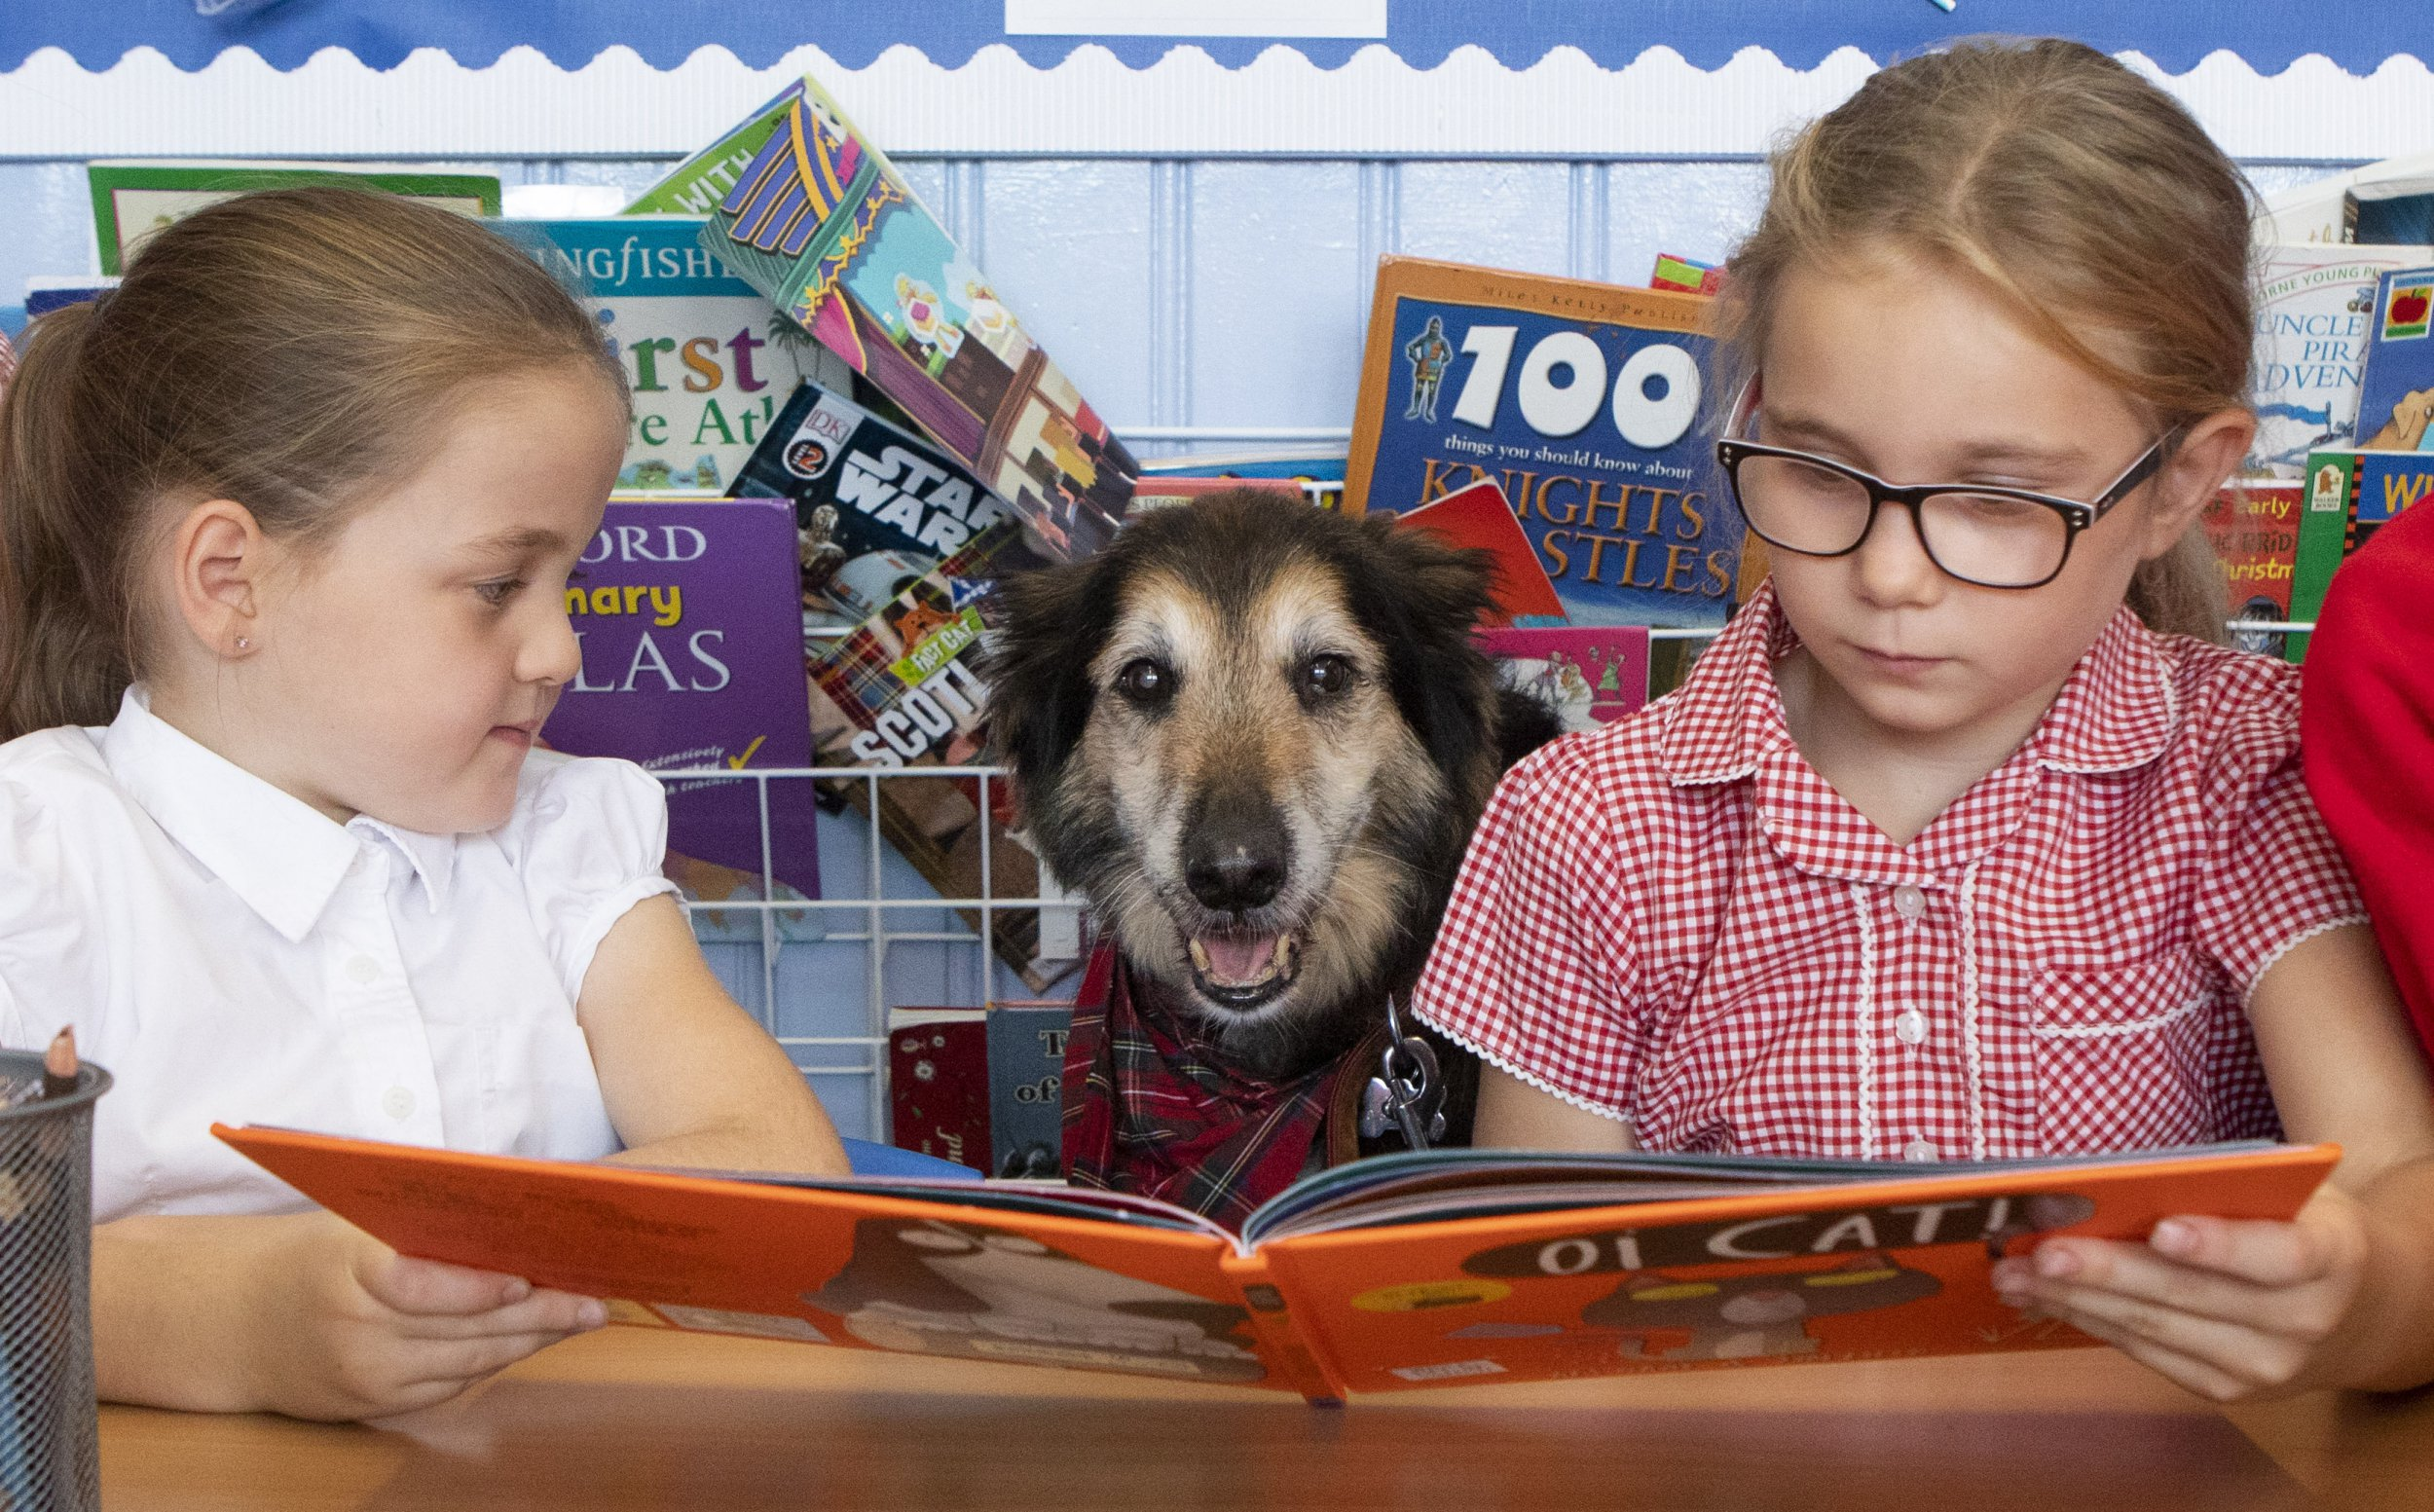 Russell the Dog, 13, listening to school children read at Coalsnaughton Primary School. Russell visits the children of Coalsnaughton Primary School in Alloa, Clackmannanshire every Friday to listen to the children read and take part in the ?daily mile? walk. October 5 2018.See story SWSCdog.This adorable pooch is all ears as he helps primary school pupils learn to read - and even has his own school uniform and backpack. Rescue dog Russell, aged 13, is always met with an adoring audience when he visits Coalsnaughton Primary School, Alloa, Clackmannanshire on a Friday afternoon. The elderly dog is the family pet of school worker Kelsie McAlpine, 25, who came up with the idea of bringing him in to meet the children. Kelsie researched the benefits of children having contact with animals, and said she has seen pupils? confidence soar since Russell first visited the classroom in February.